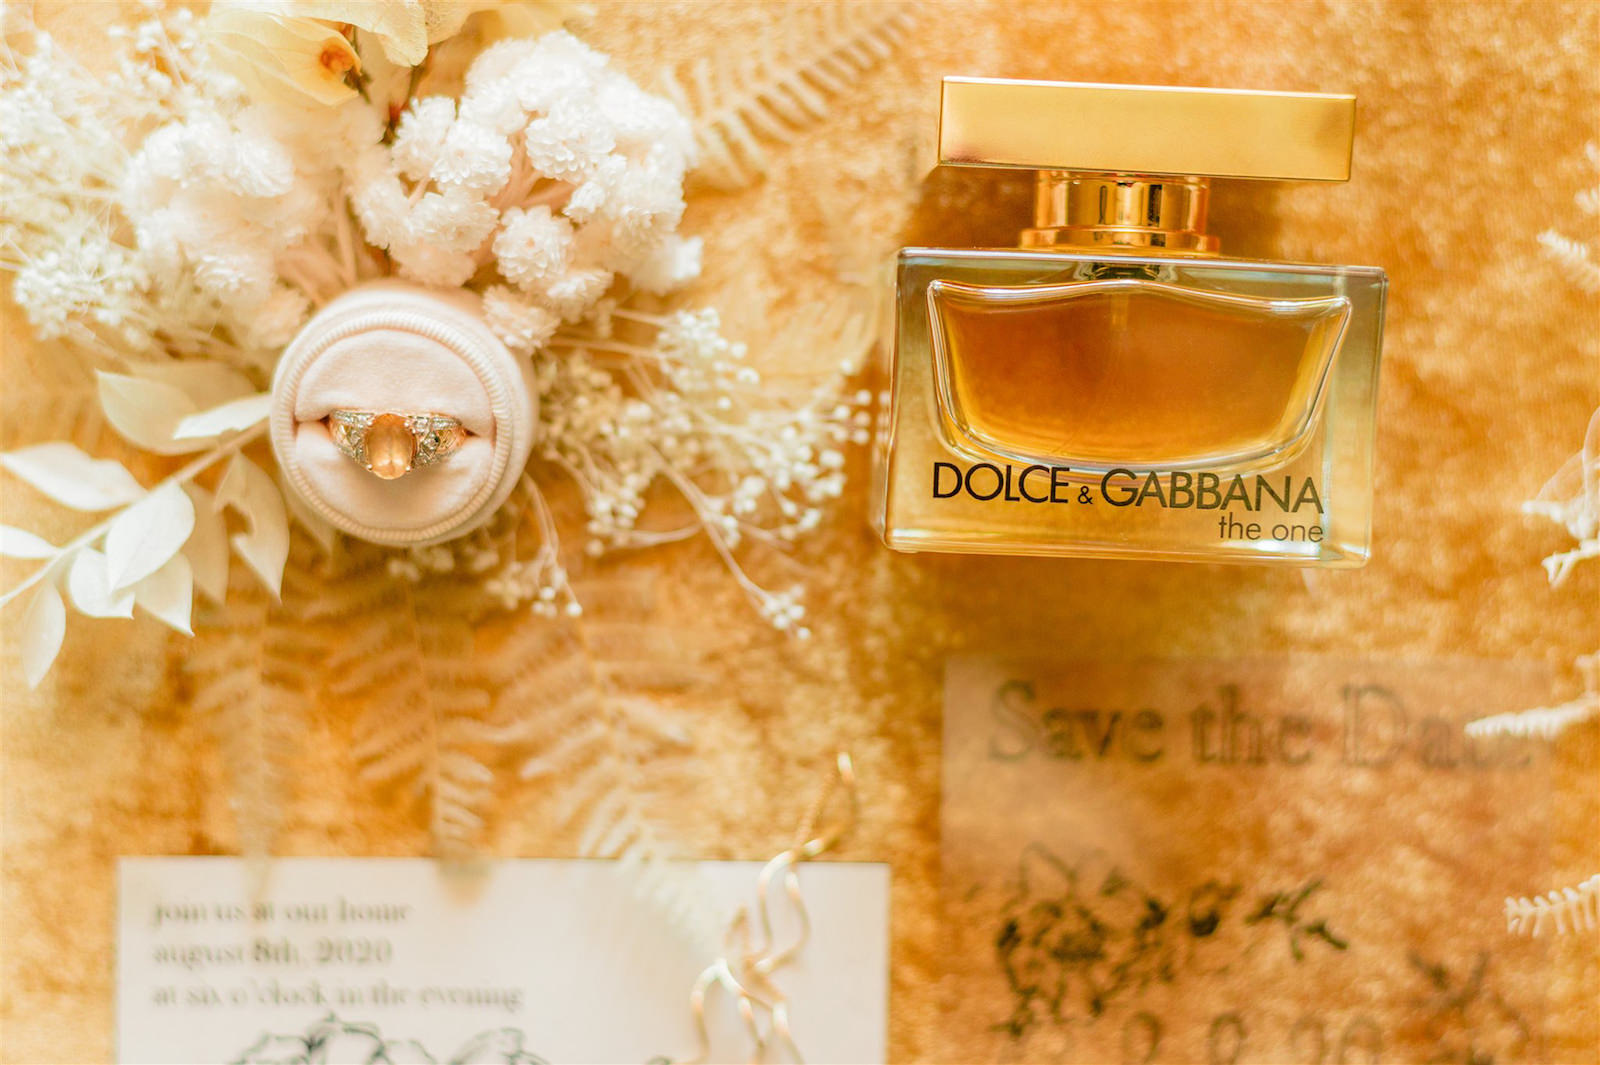 Aesthetic and Pretty Bride Wedding Accessories, Dolce and Gabbana Perfume Bottles, Oval Engagement Ring in Blush Pink Ring Box